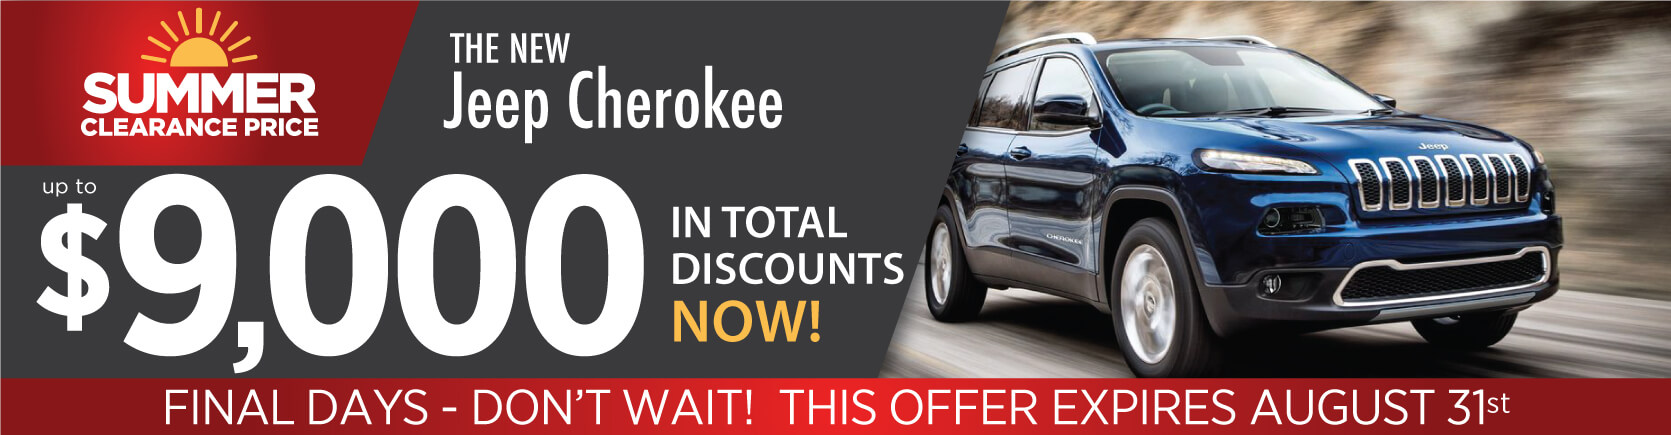 CD-2018-Jeep-Cherokee-Discount-TEST-3-Slider-Aug-2018